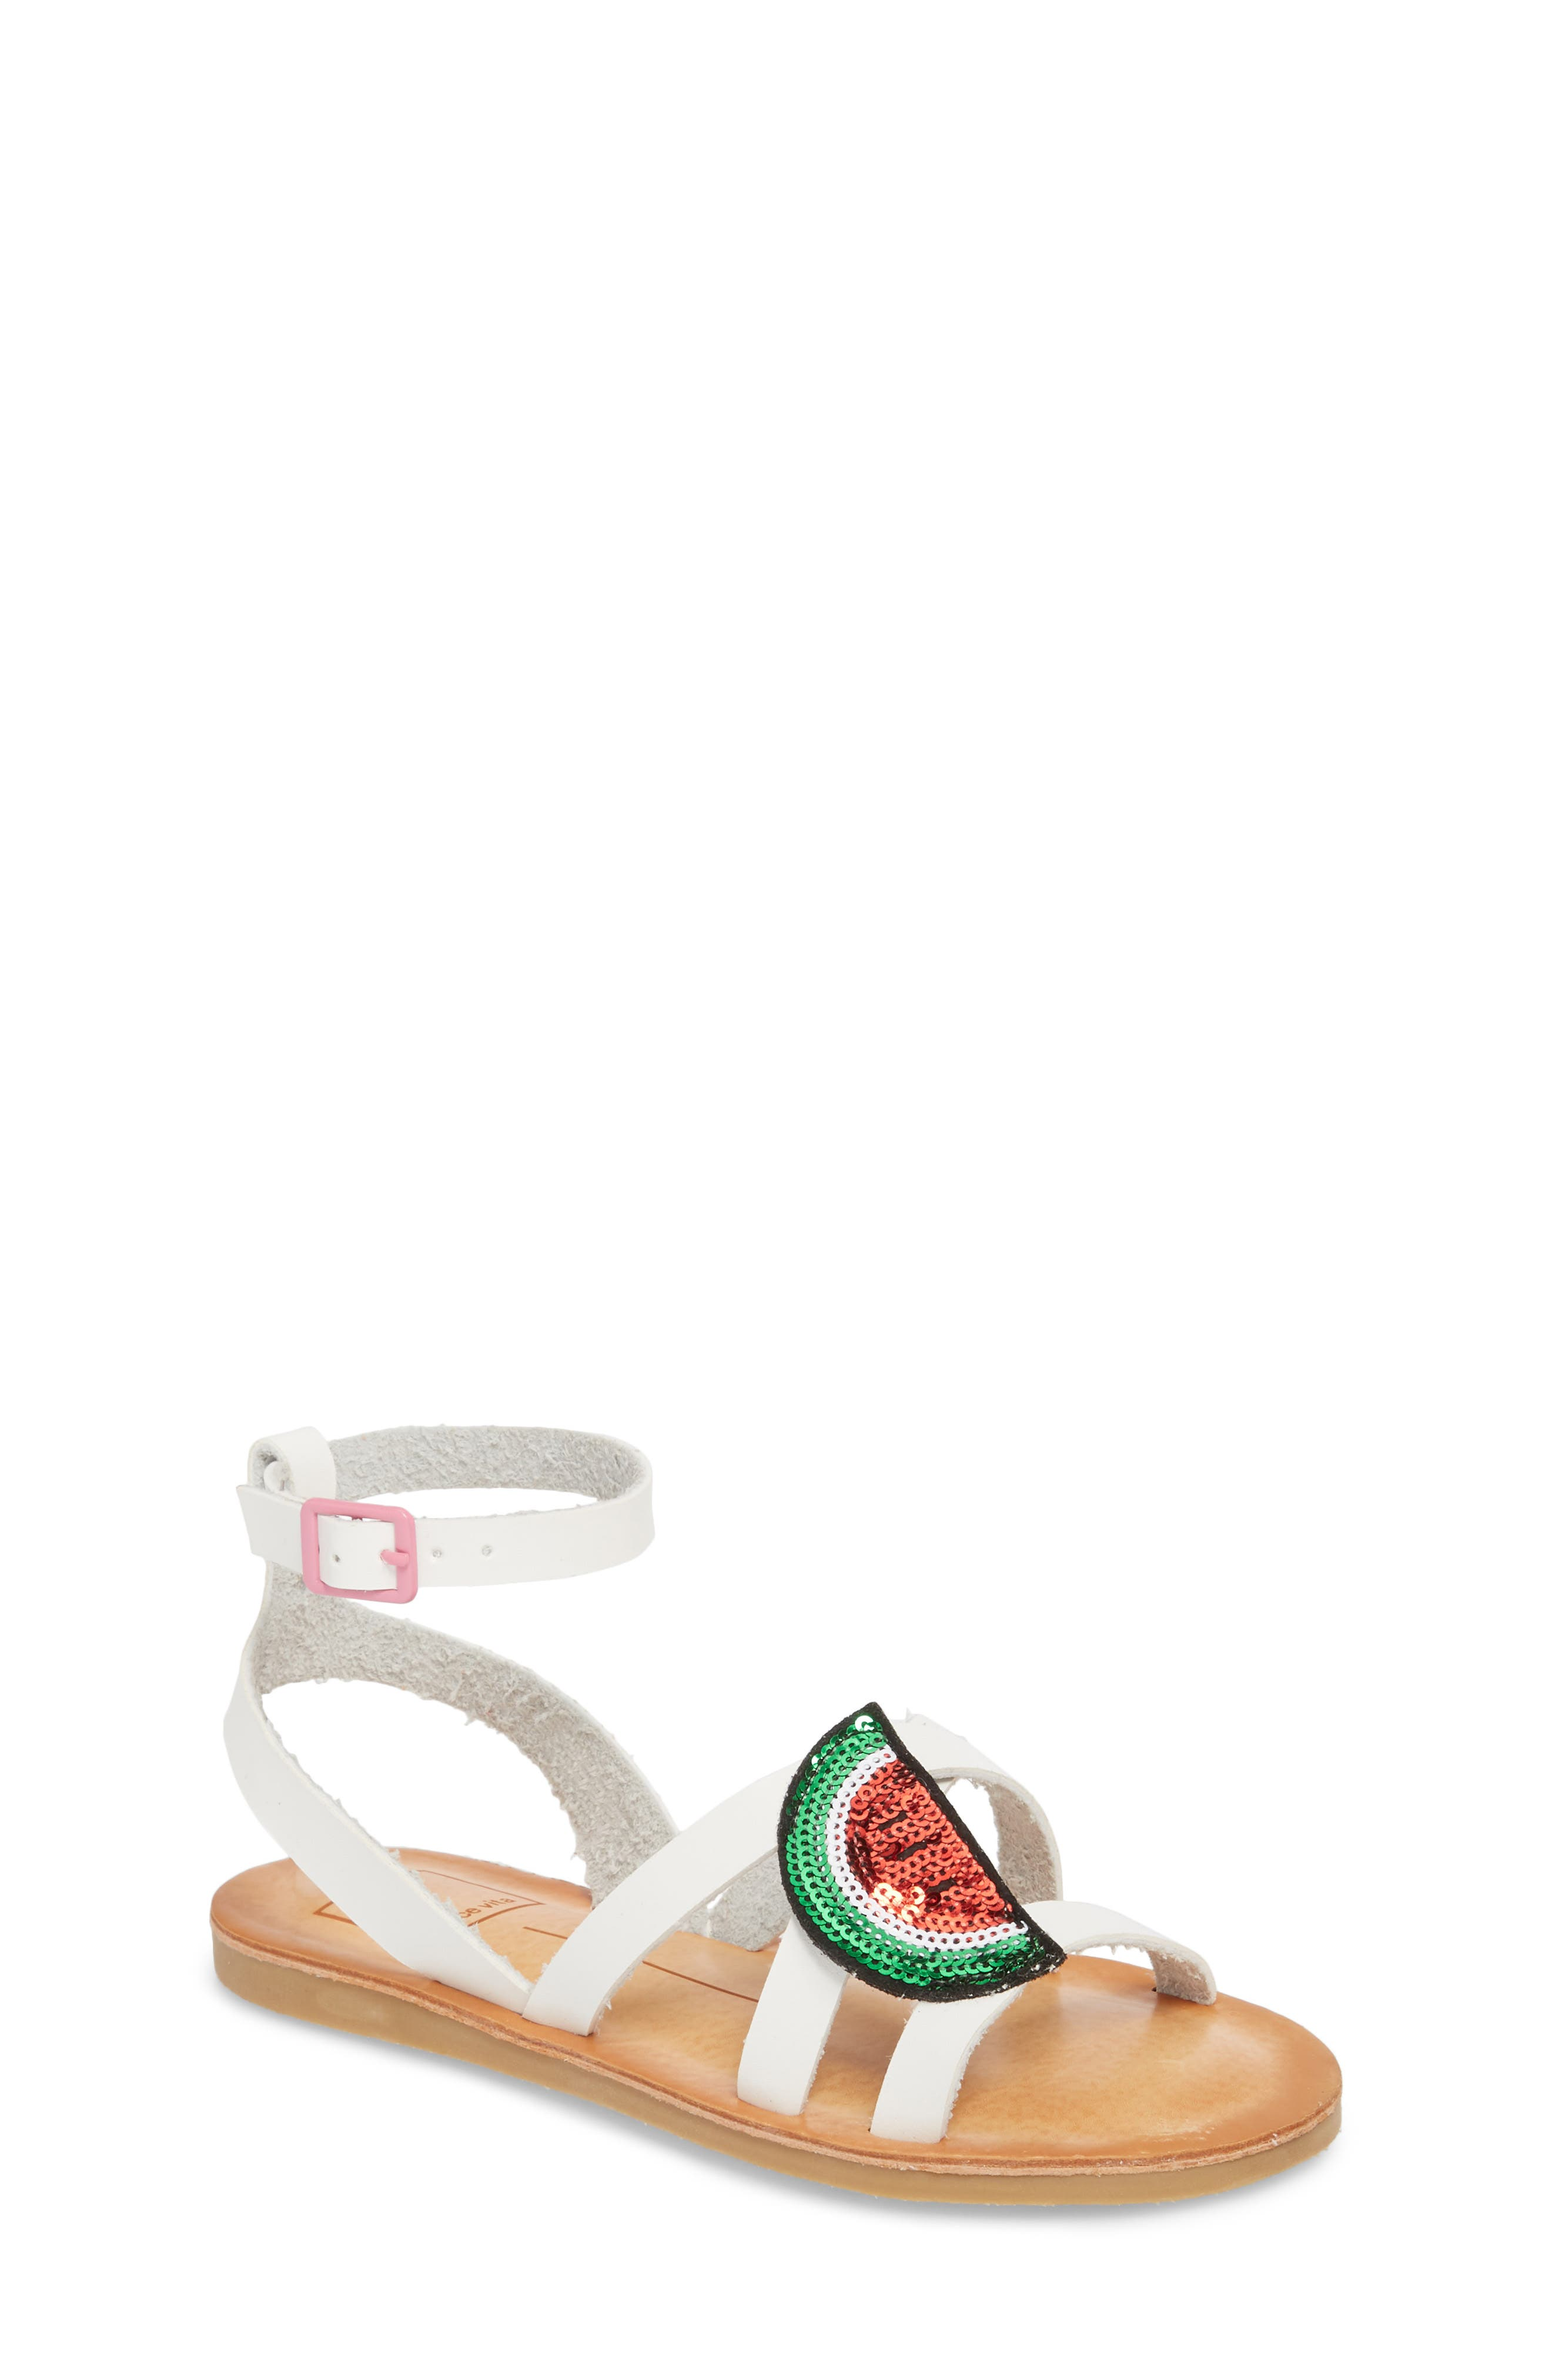 Jaclin Fruit Sequined Sandal,                         Main,                         color, 100